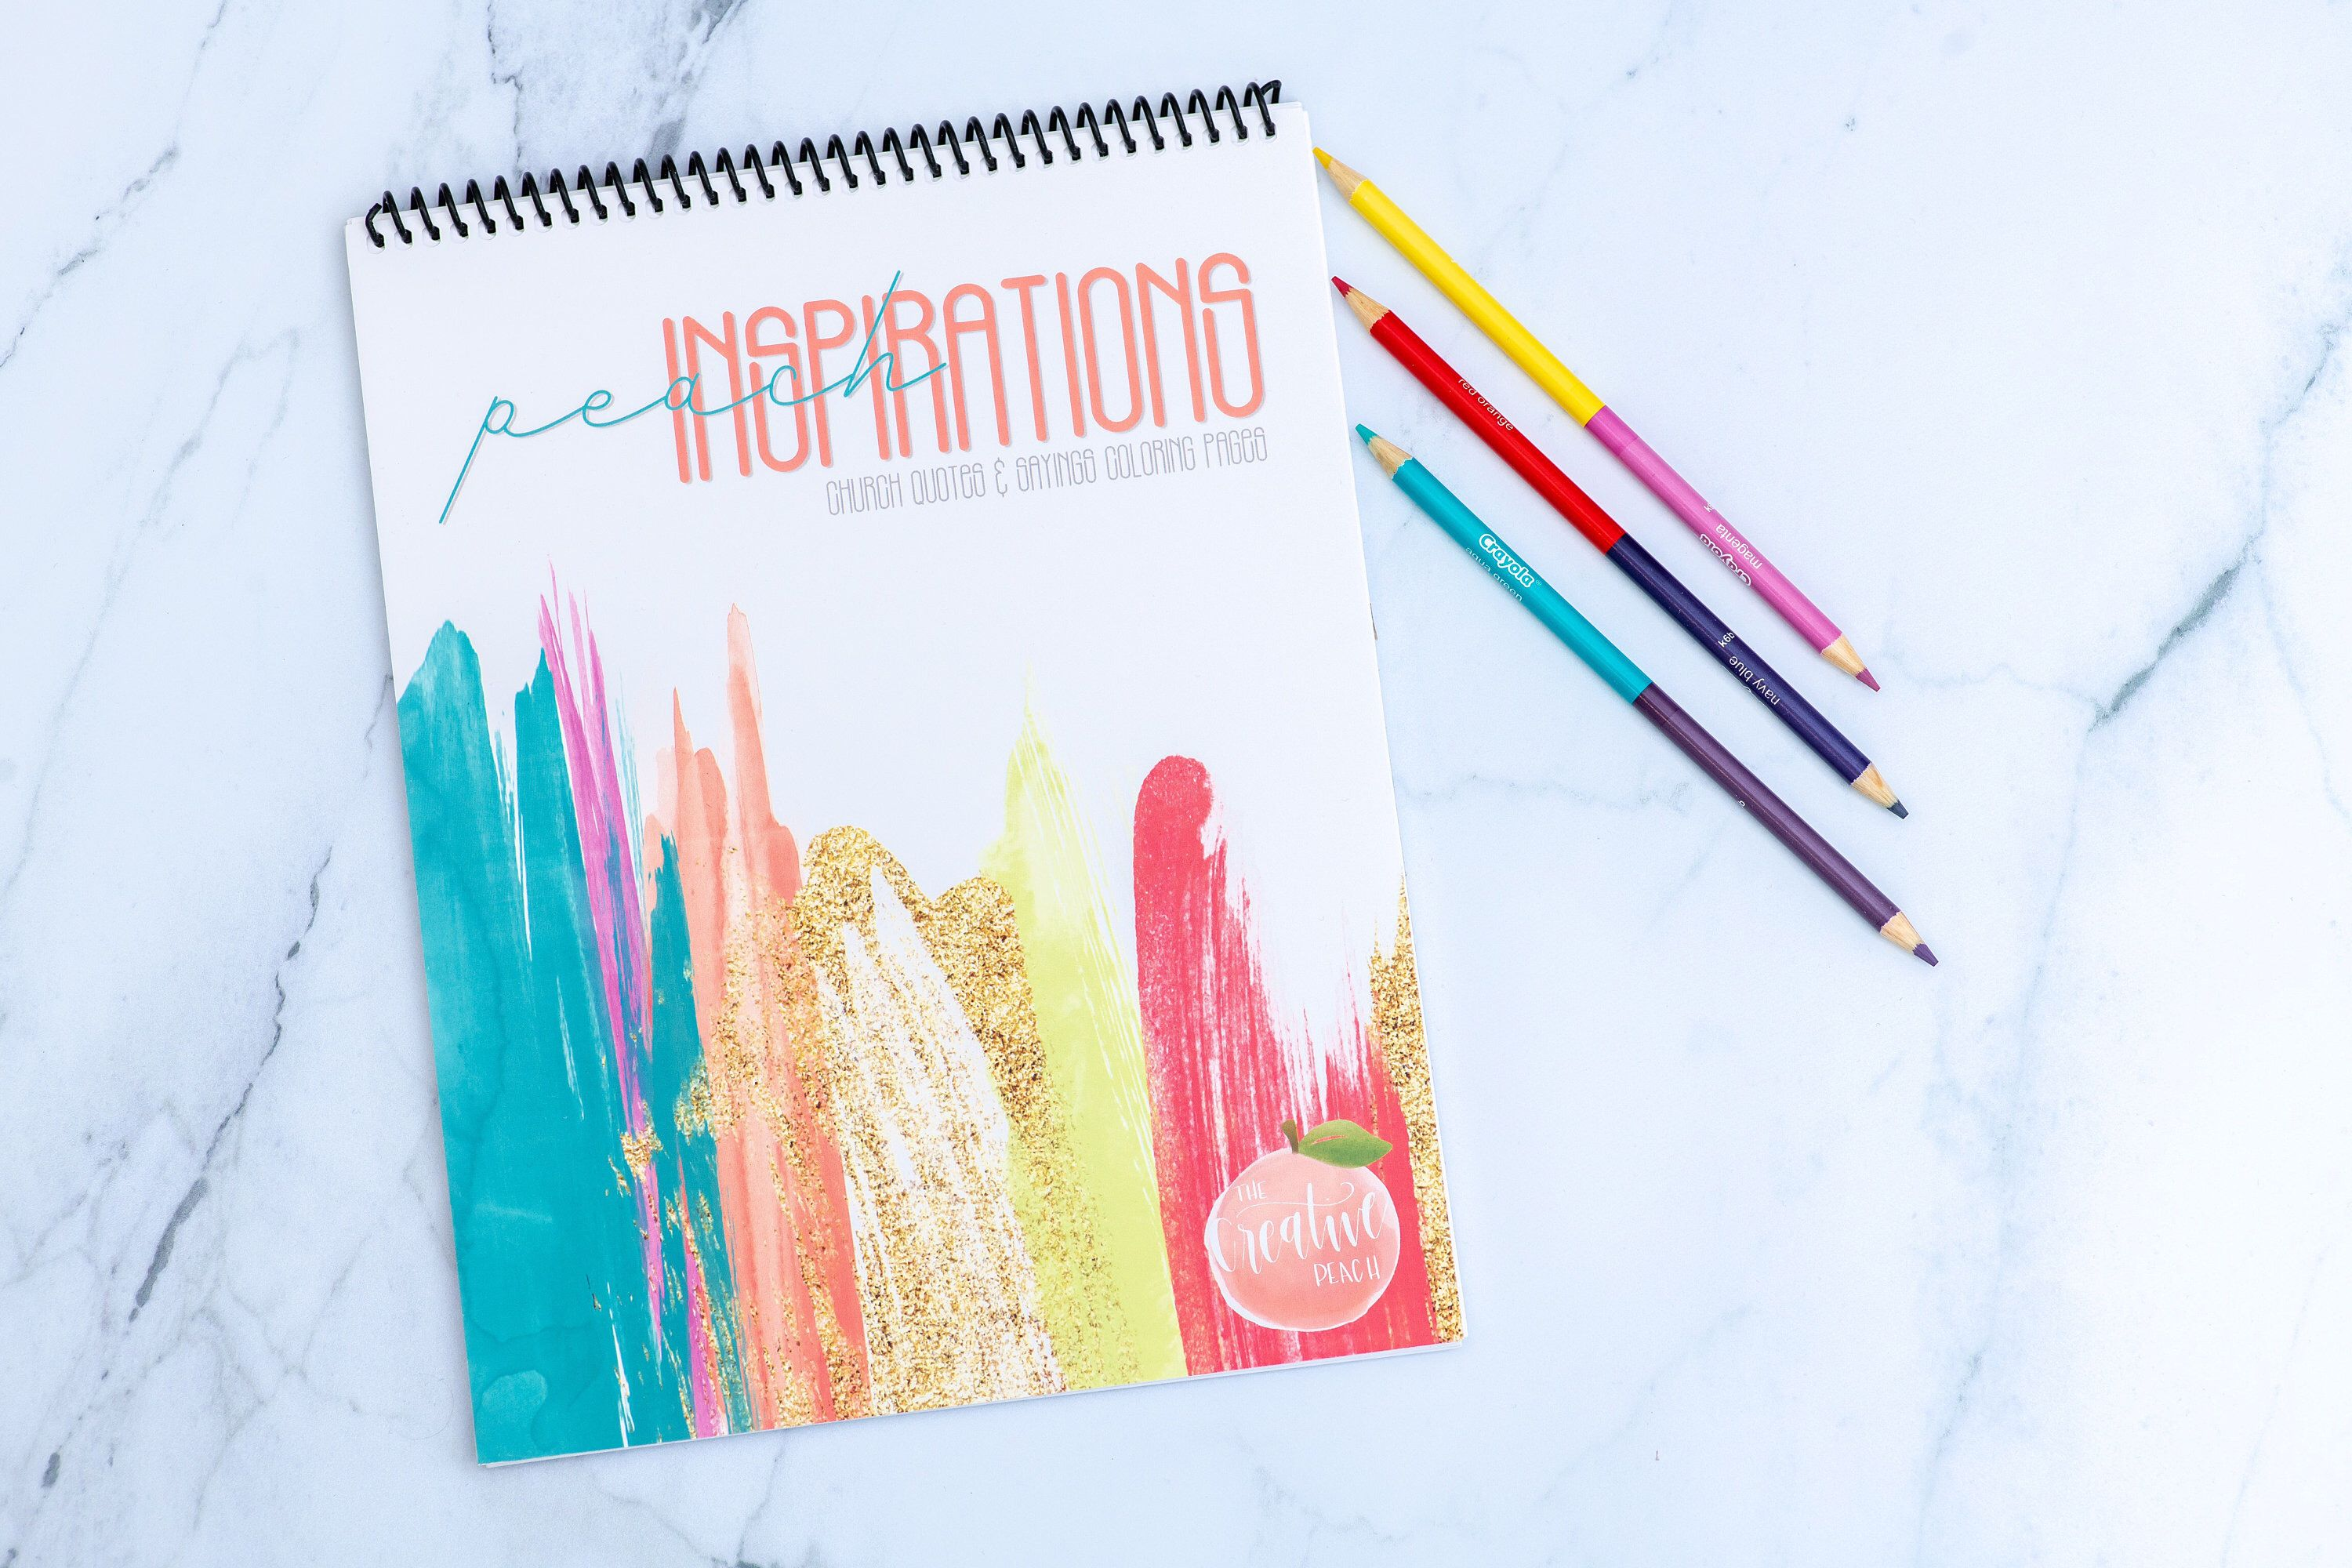 Peach Inspirations Coloring Book / Typography Coloring Pages / Church Quotes and Inspirational Sayings #churchitems